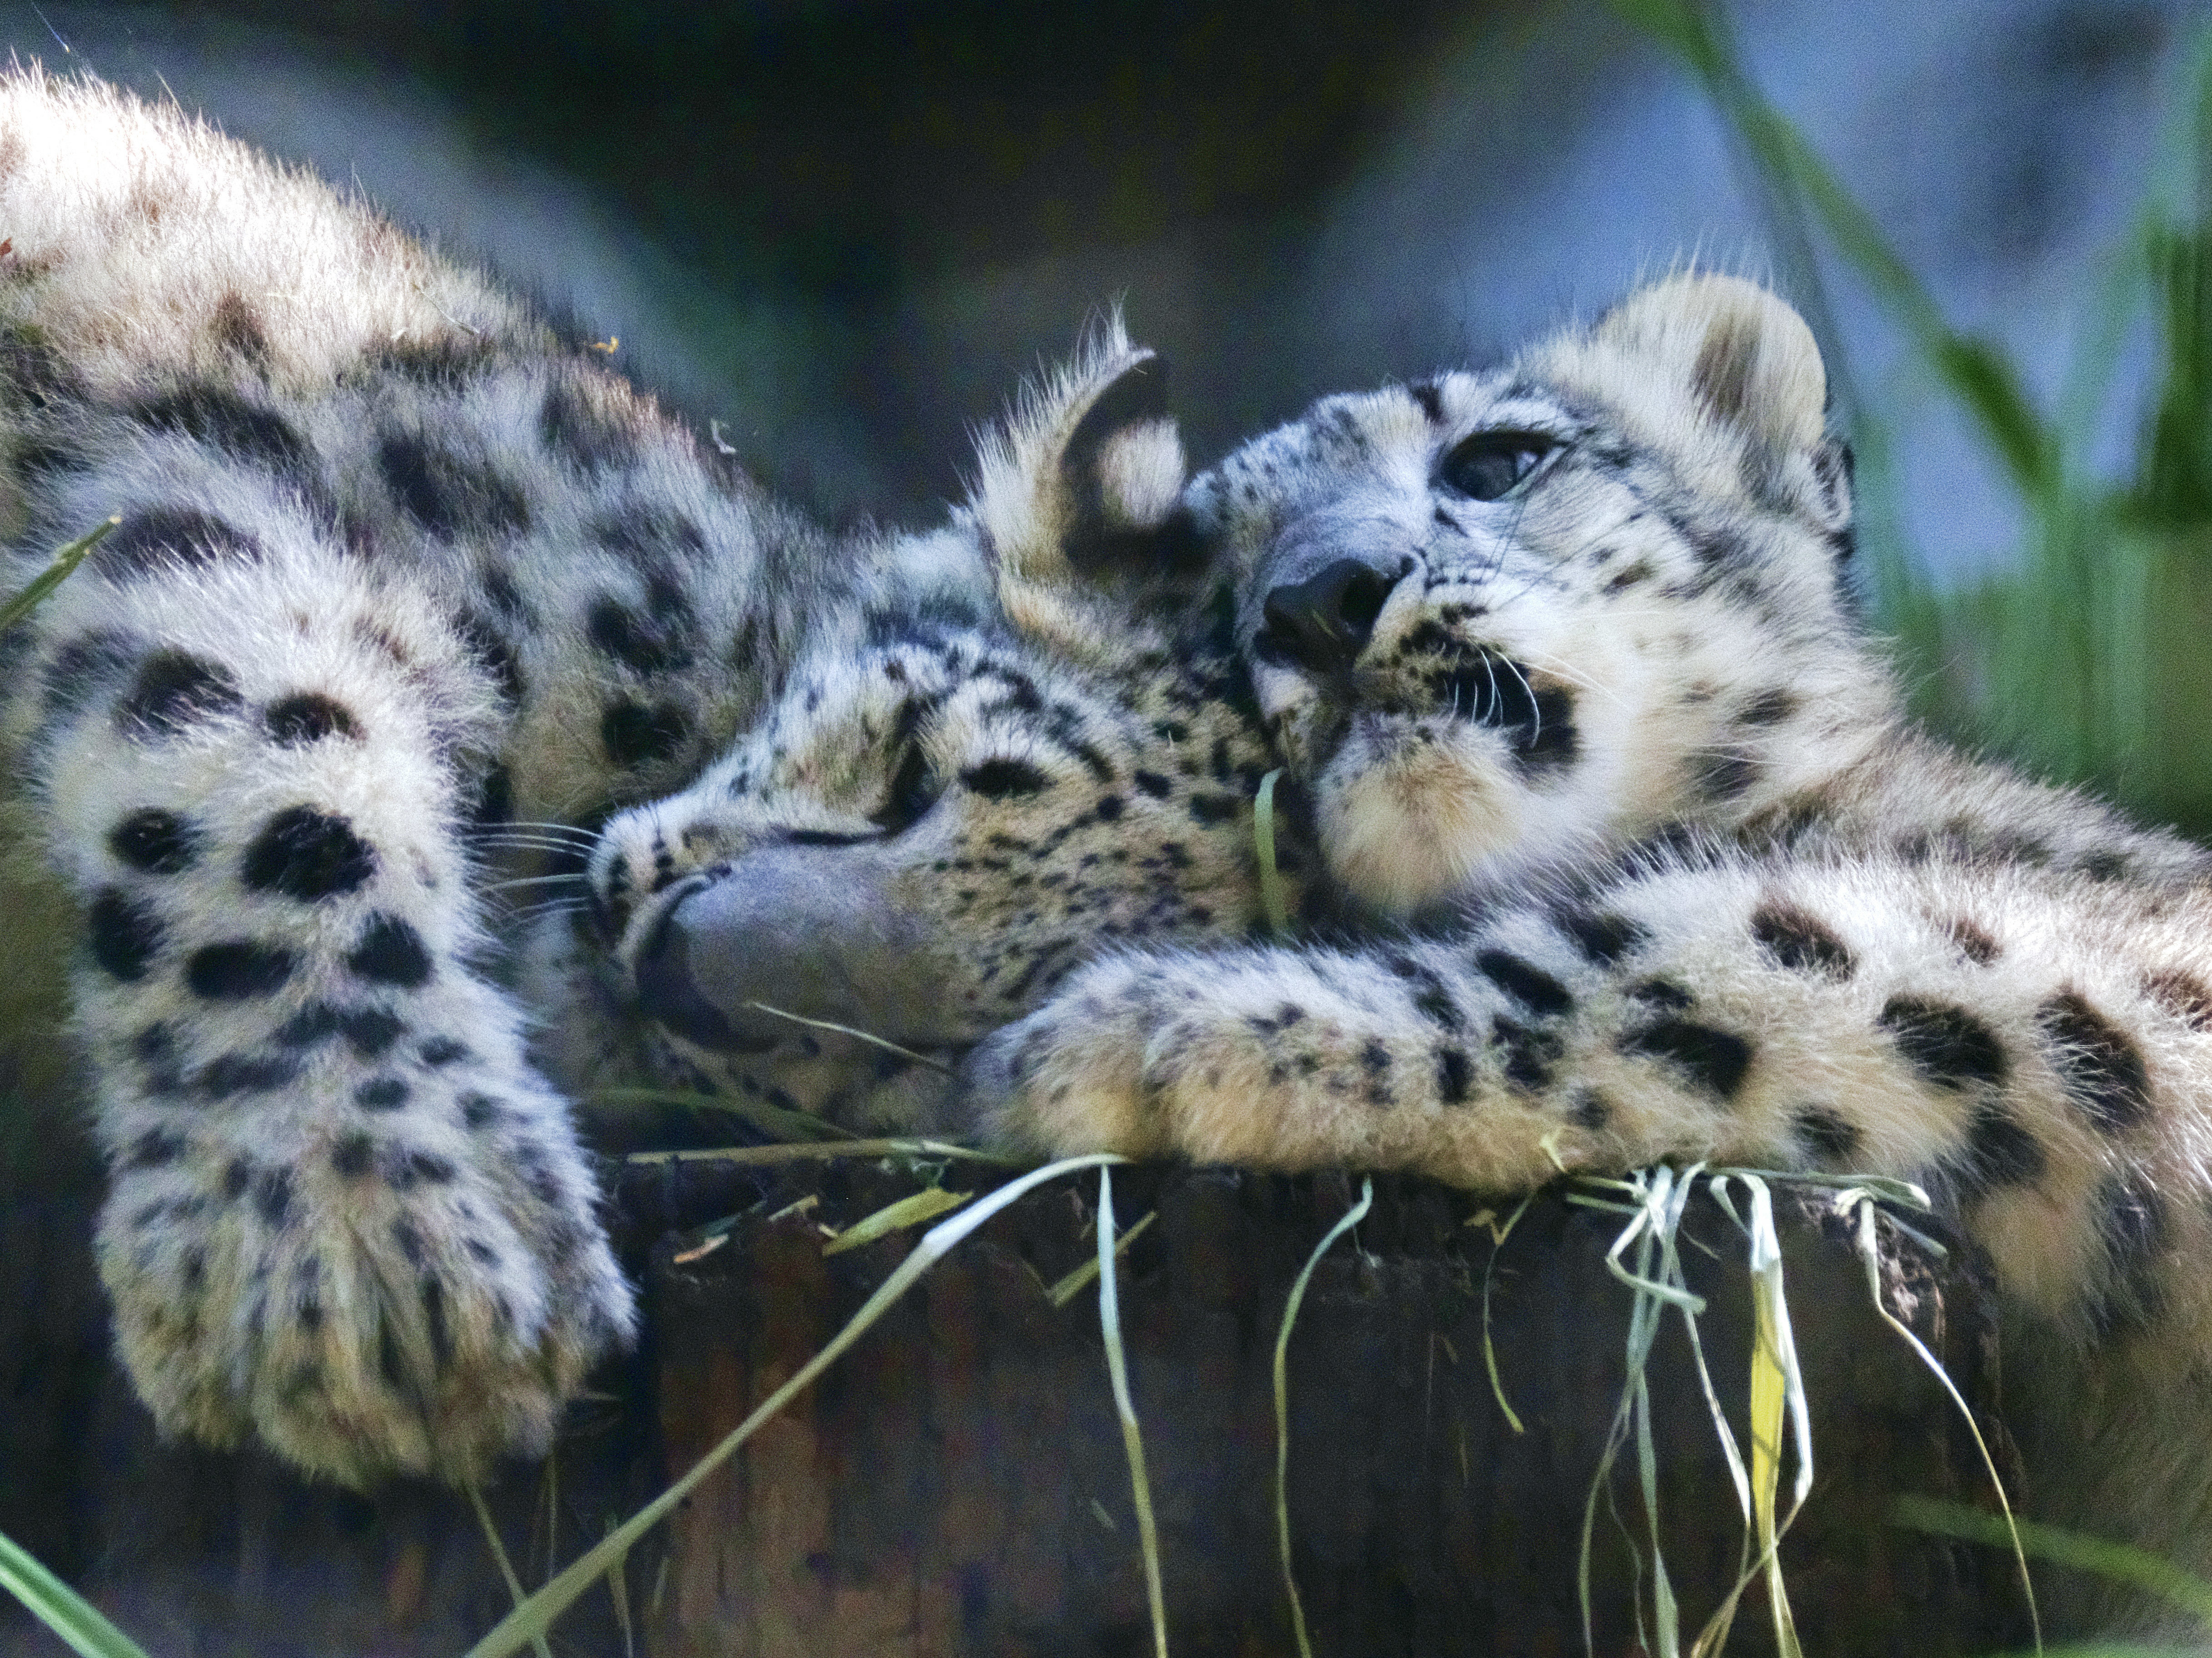 Snow leopard: Long-endangered big cat upgraded to 'vulnerable' status